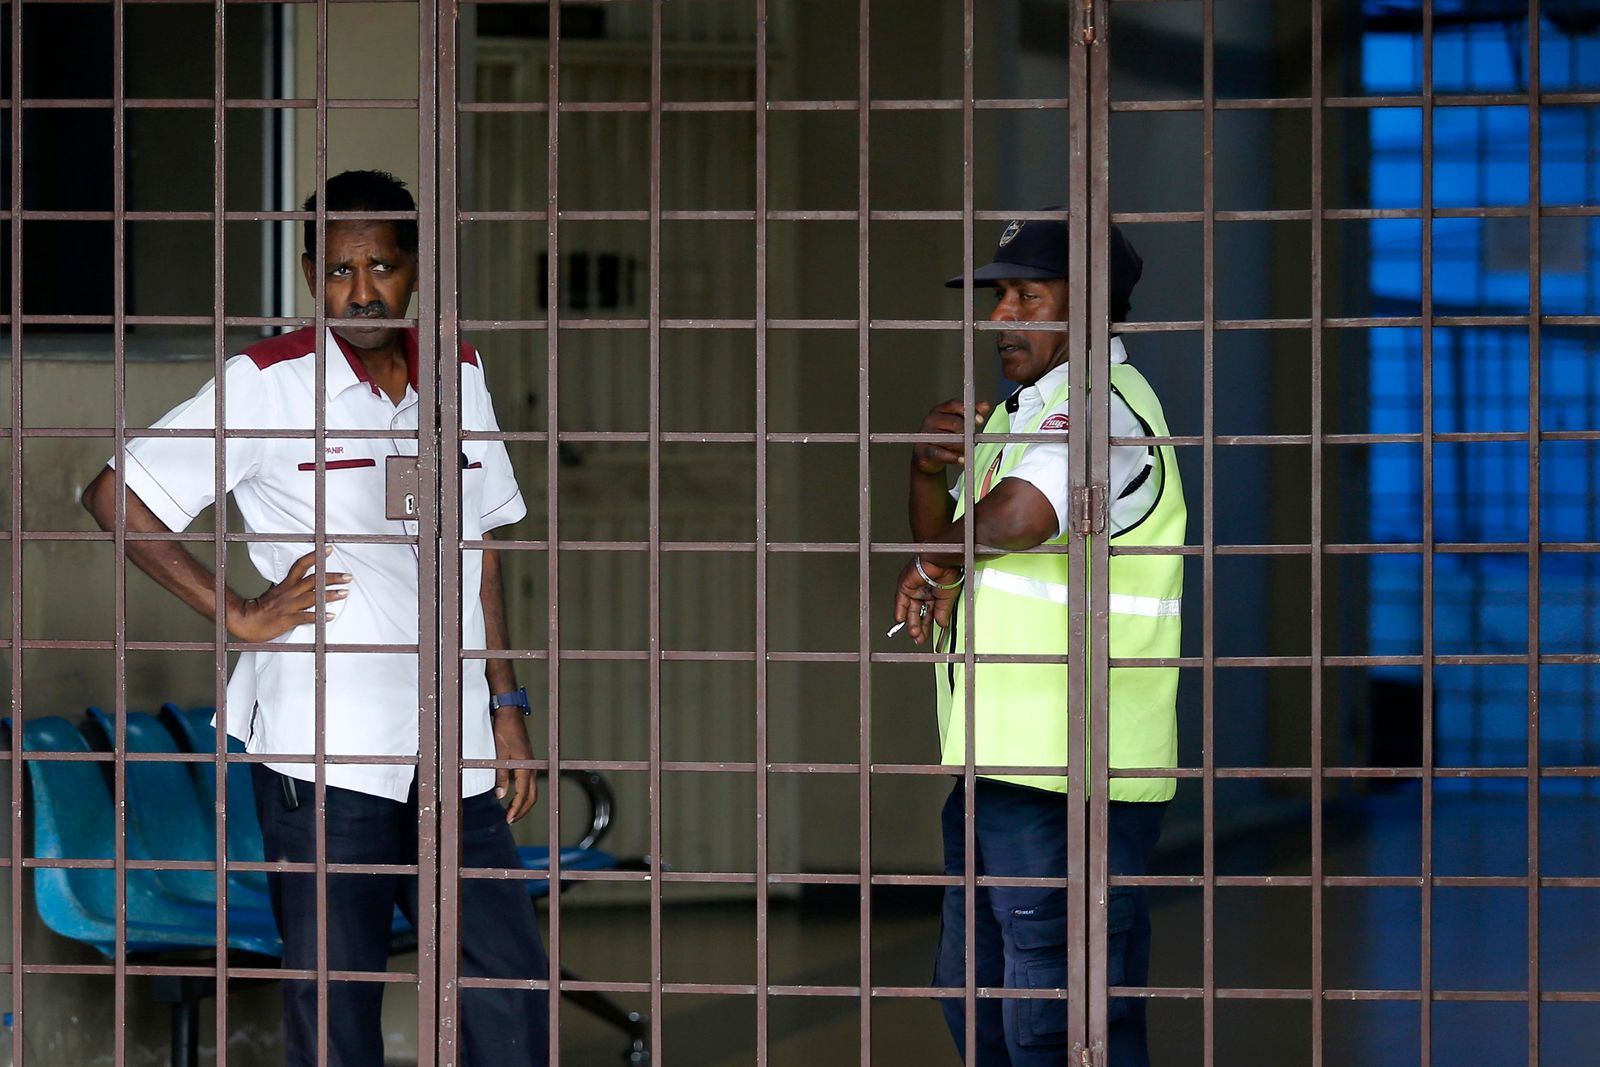 Security guards stand at the entrance to a hospital morgue in Seremban, Negeri Sembilan, Malaysia, Wednesday, Aug. 14, 2019. (AP Photo/Lai Seng Sin)